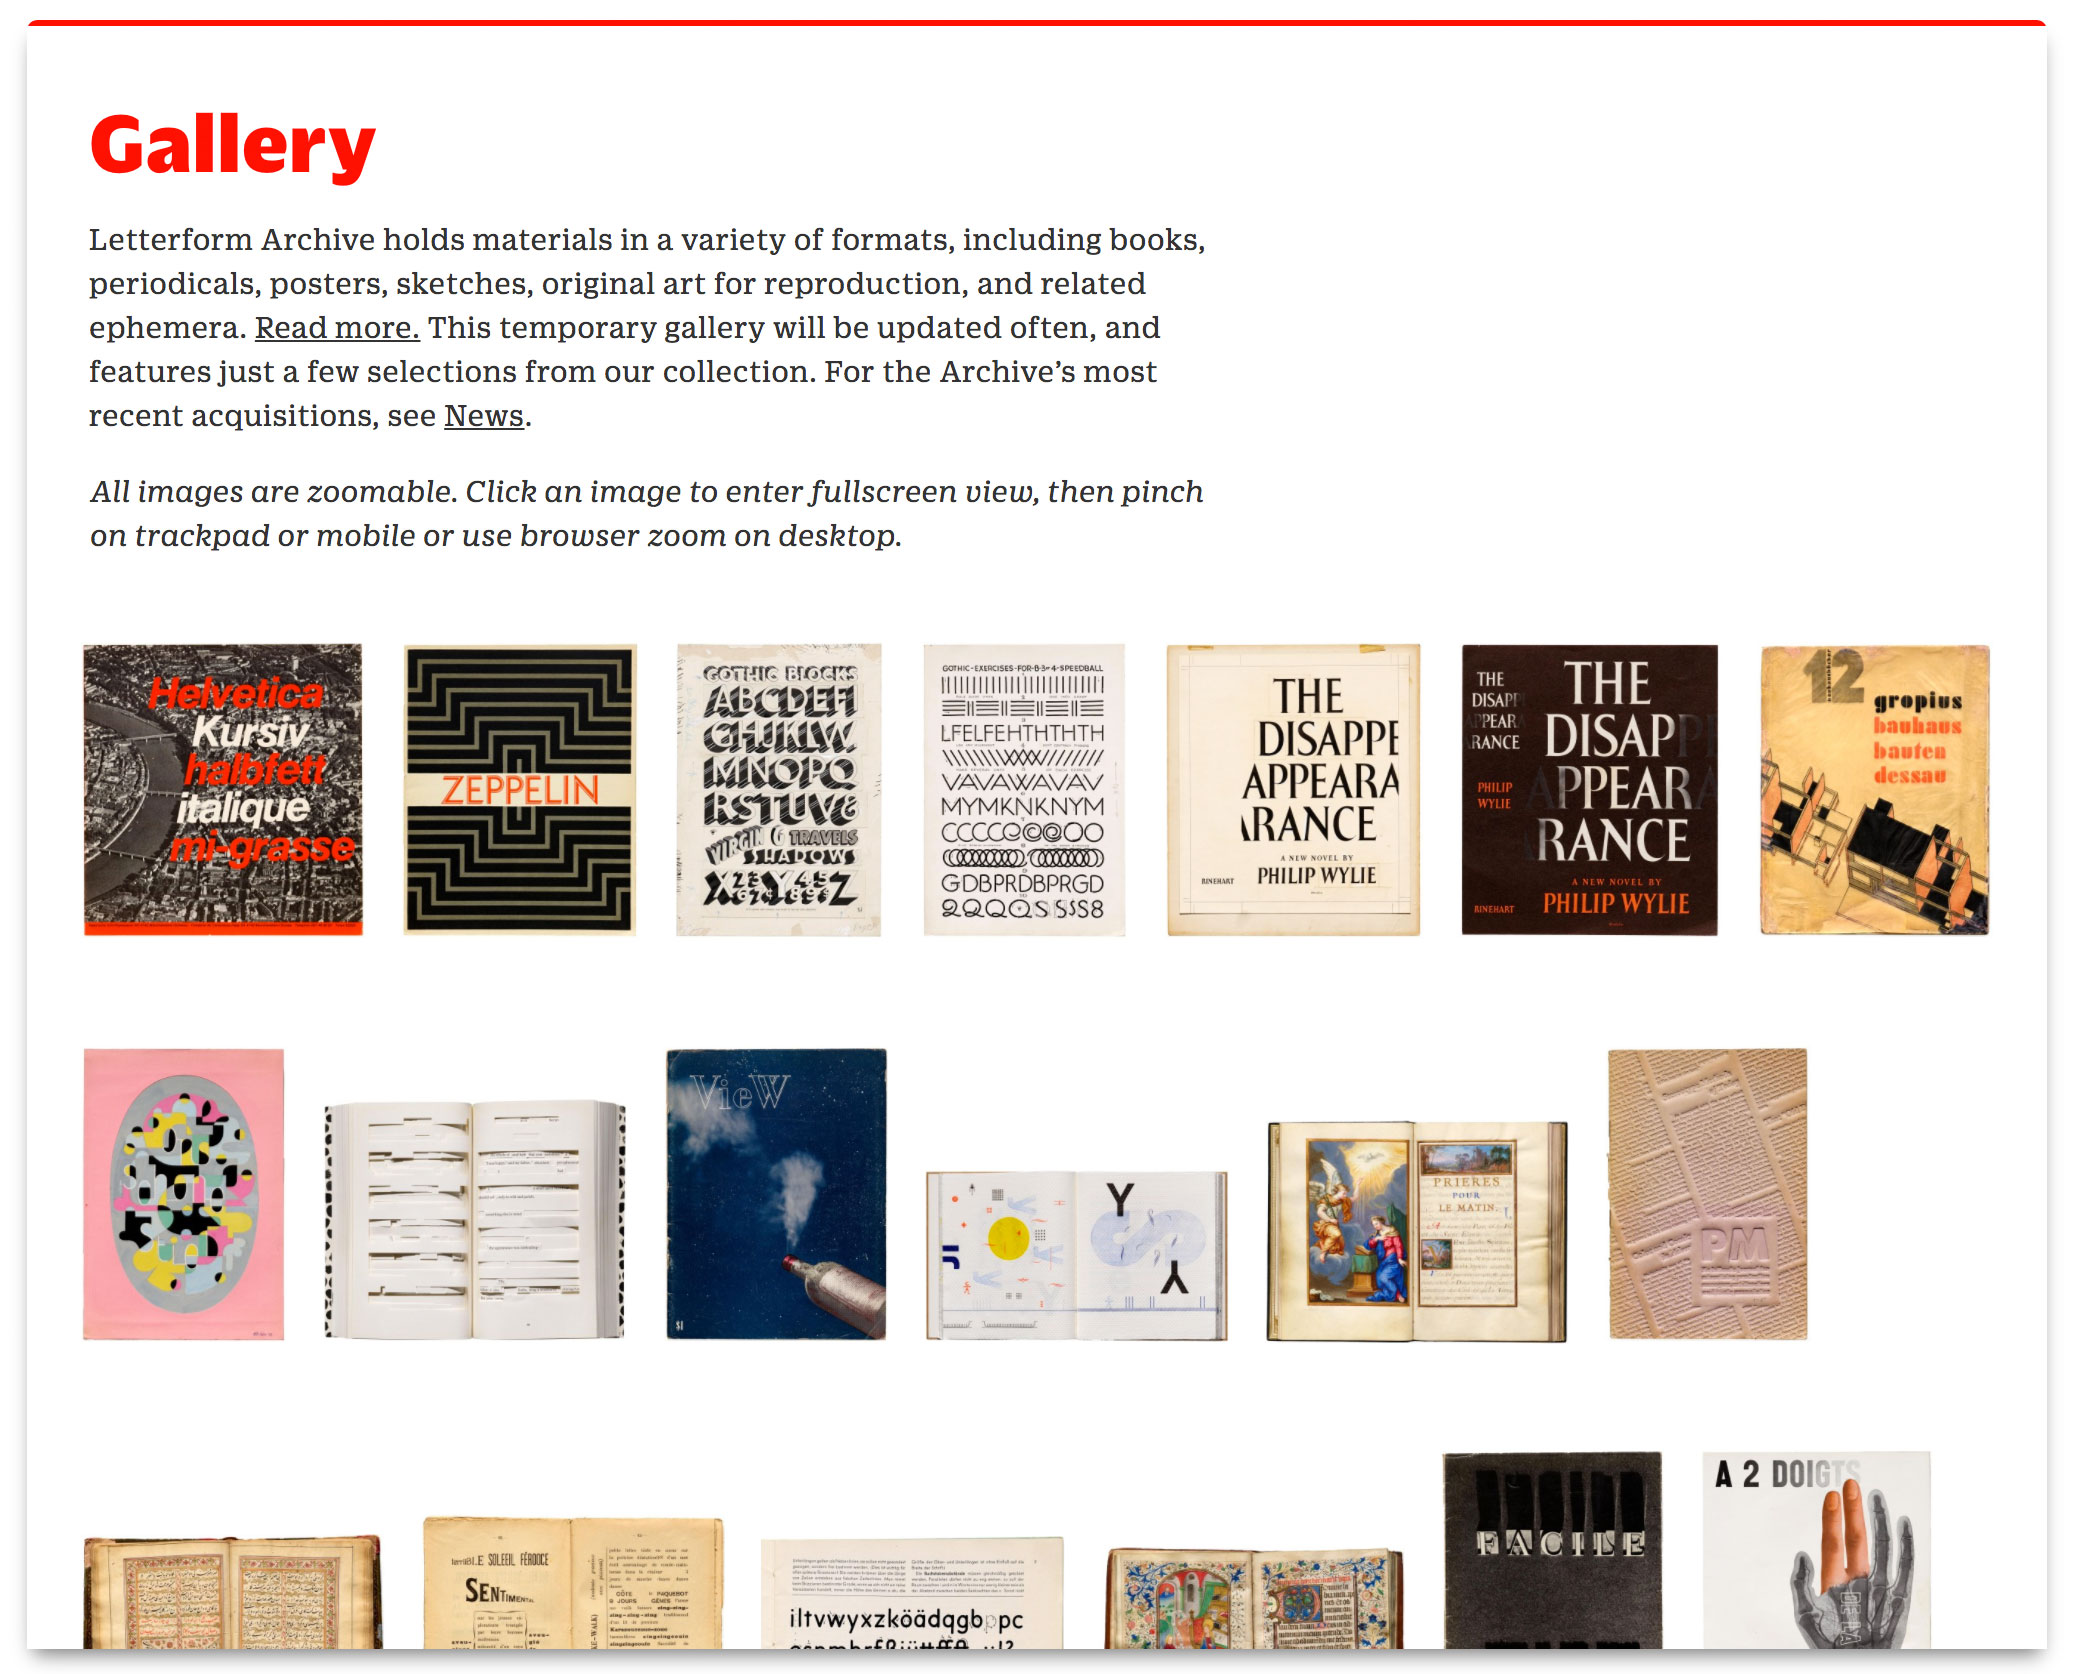 New Letterform Archive online gallery